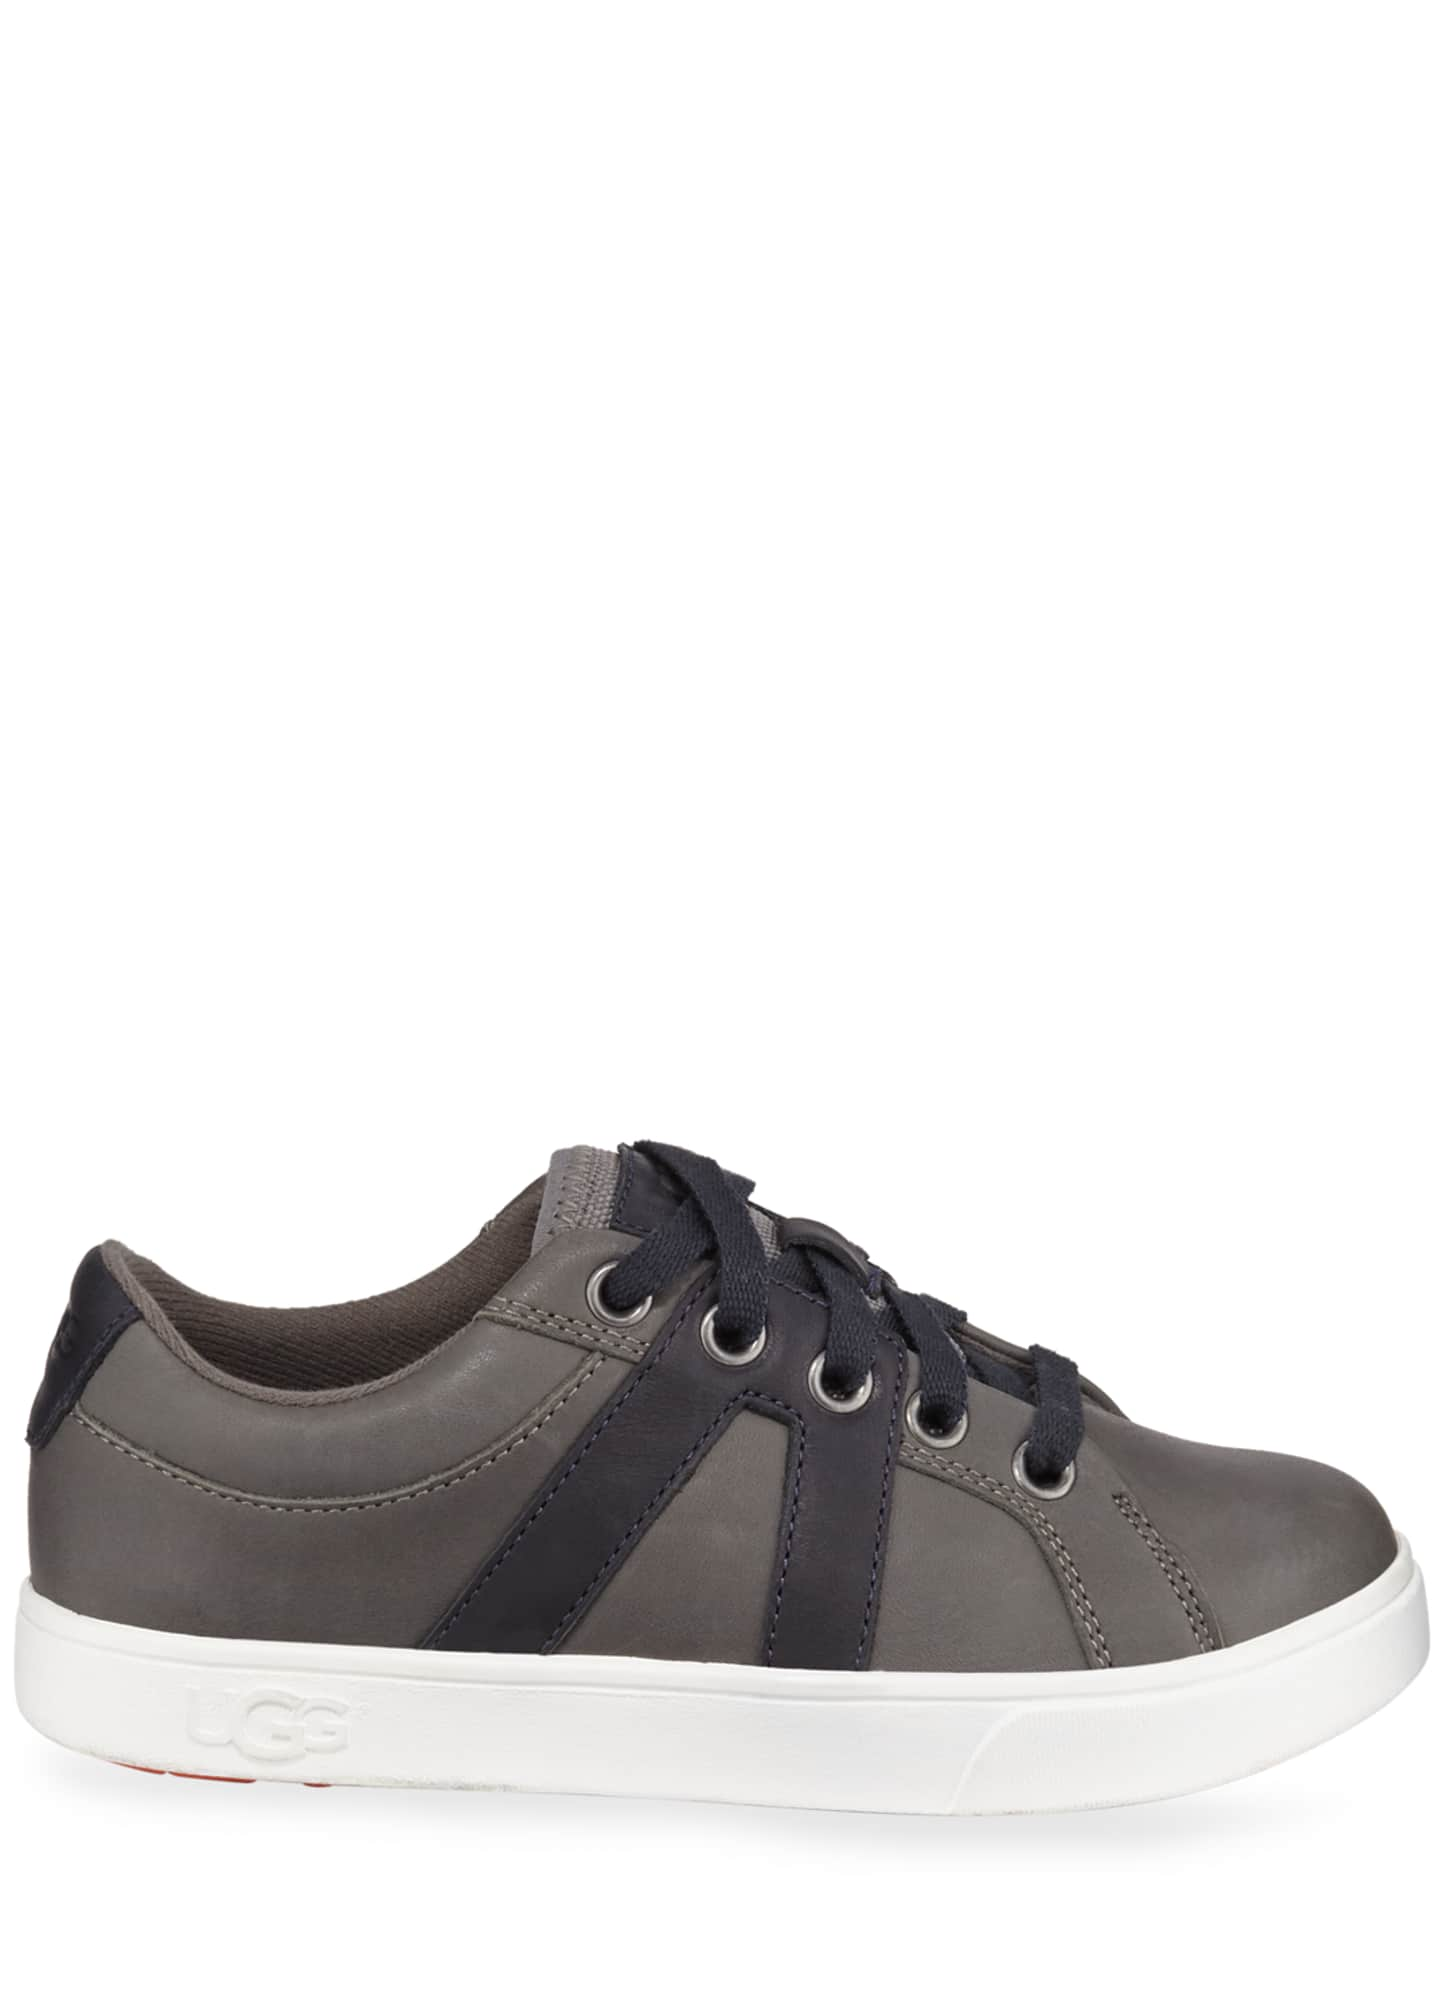 Image 2 of 4: Marcus Leather Sneakers, Toddler/Kids